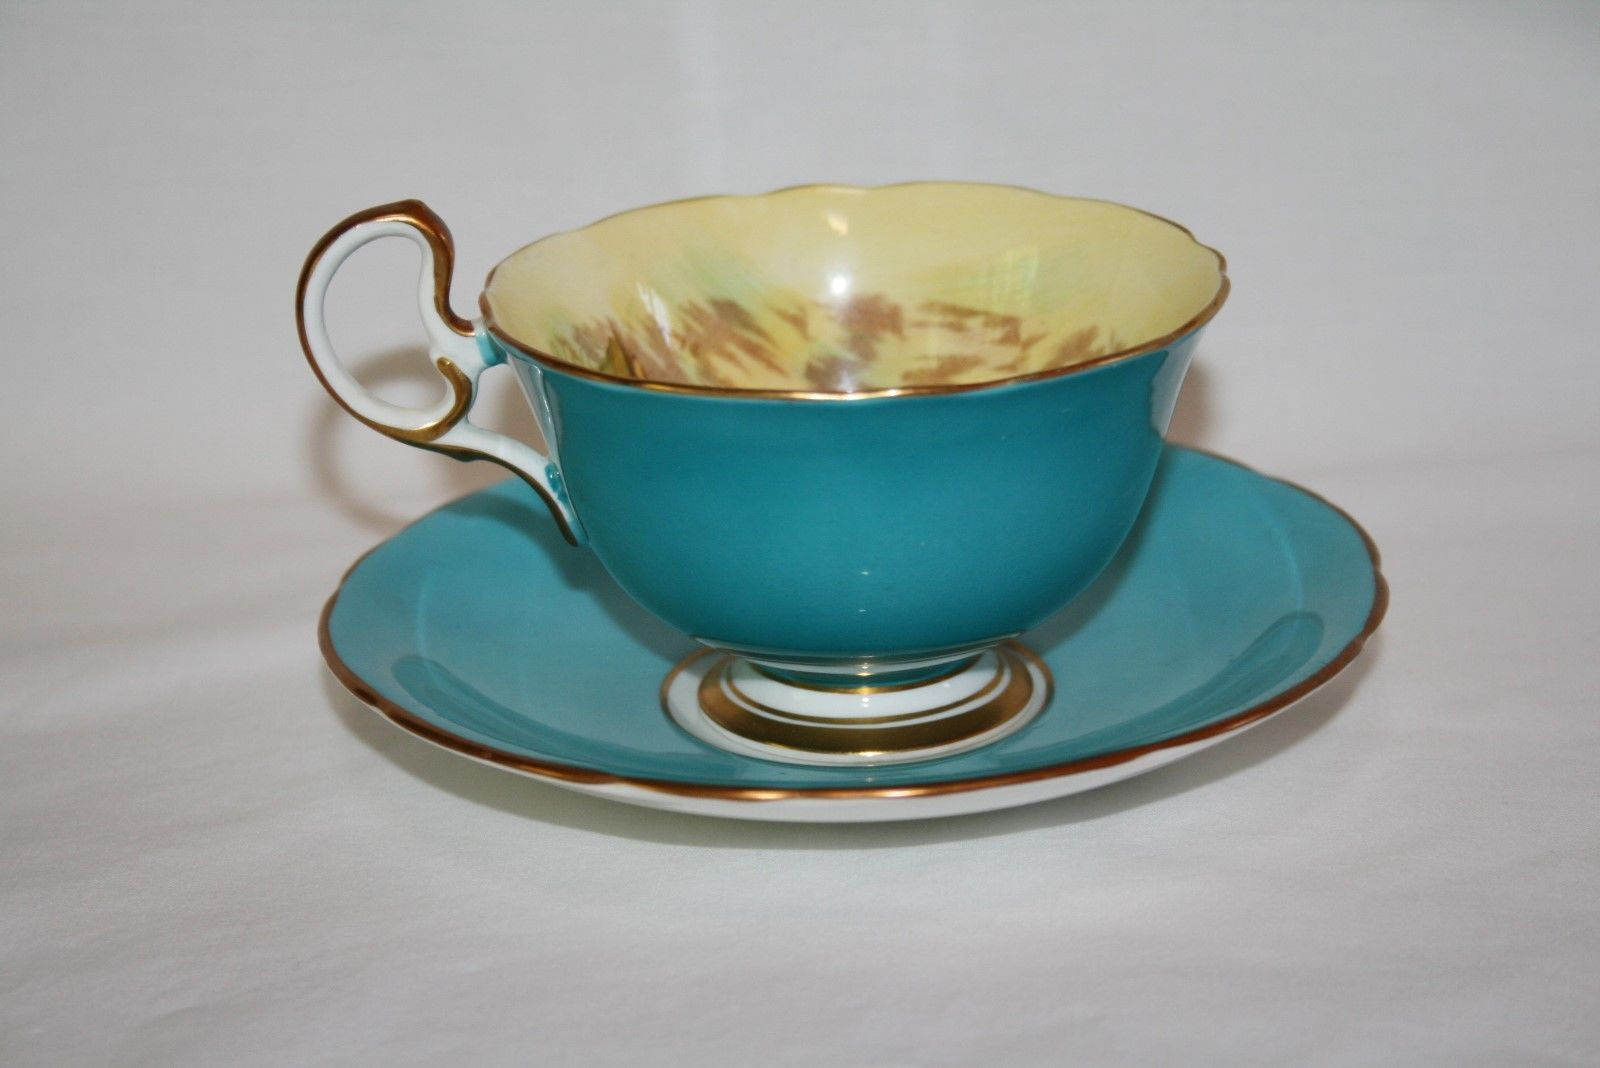 Aynsley C439 Signed D Jones Turquoise, Yellow, Gold, Fruit Tea Cup & Saucer Set